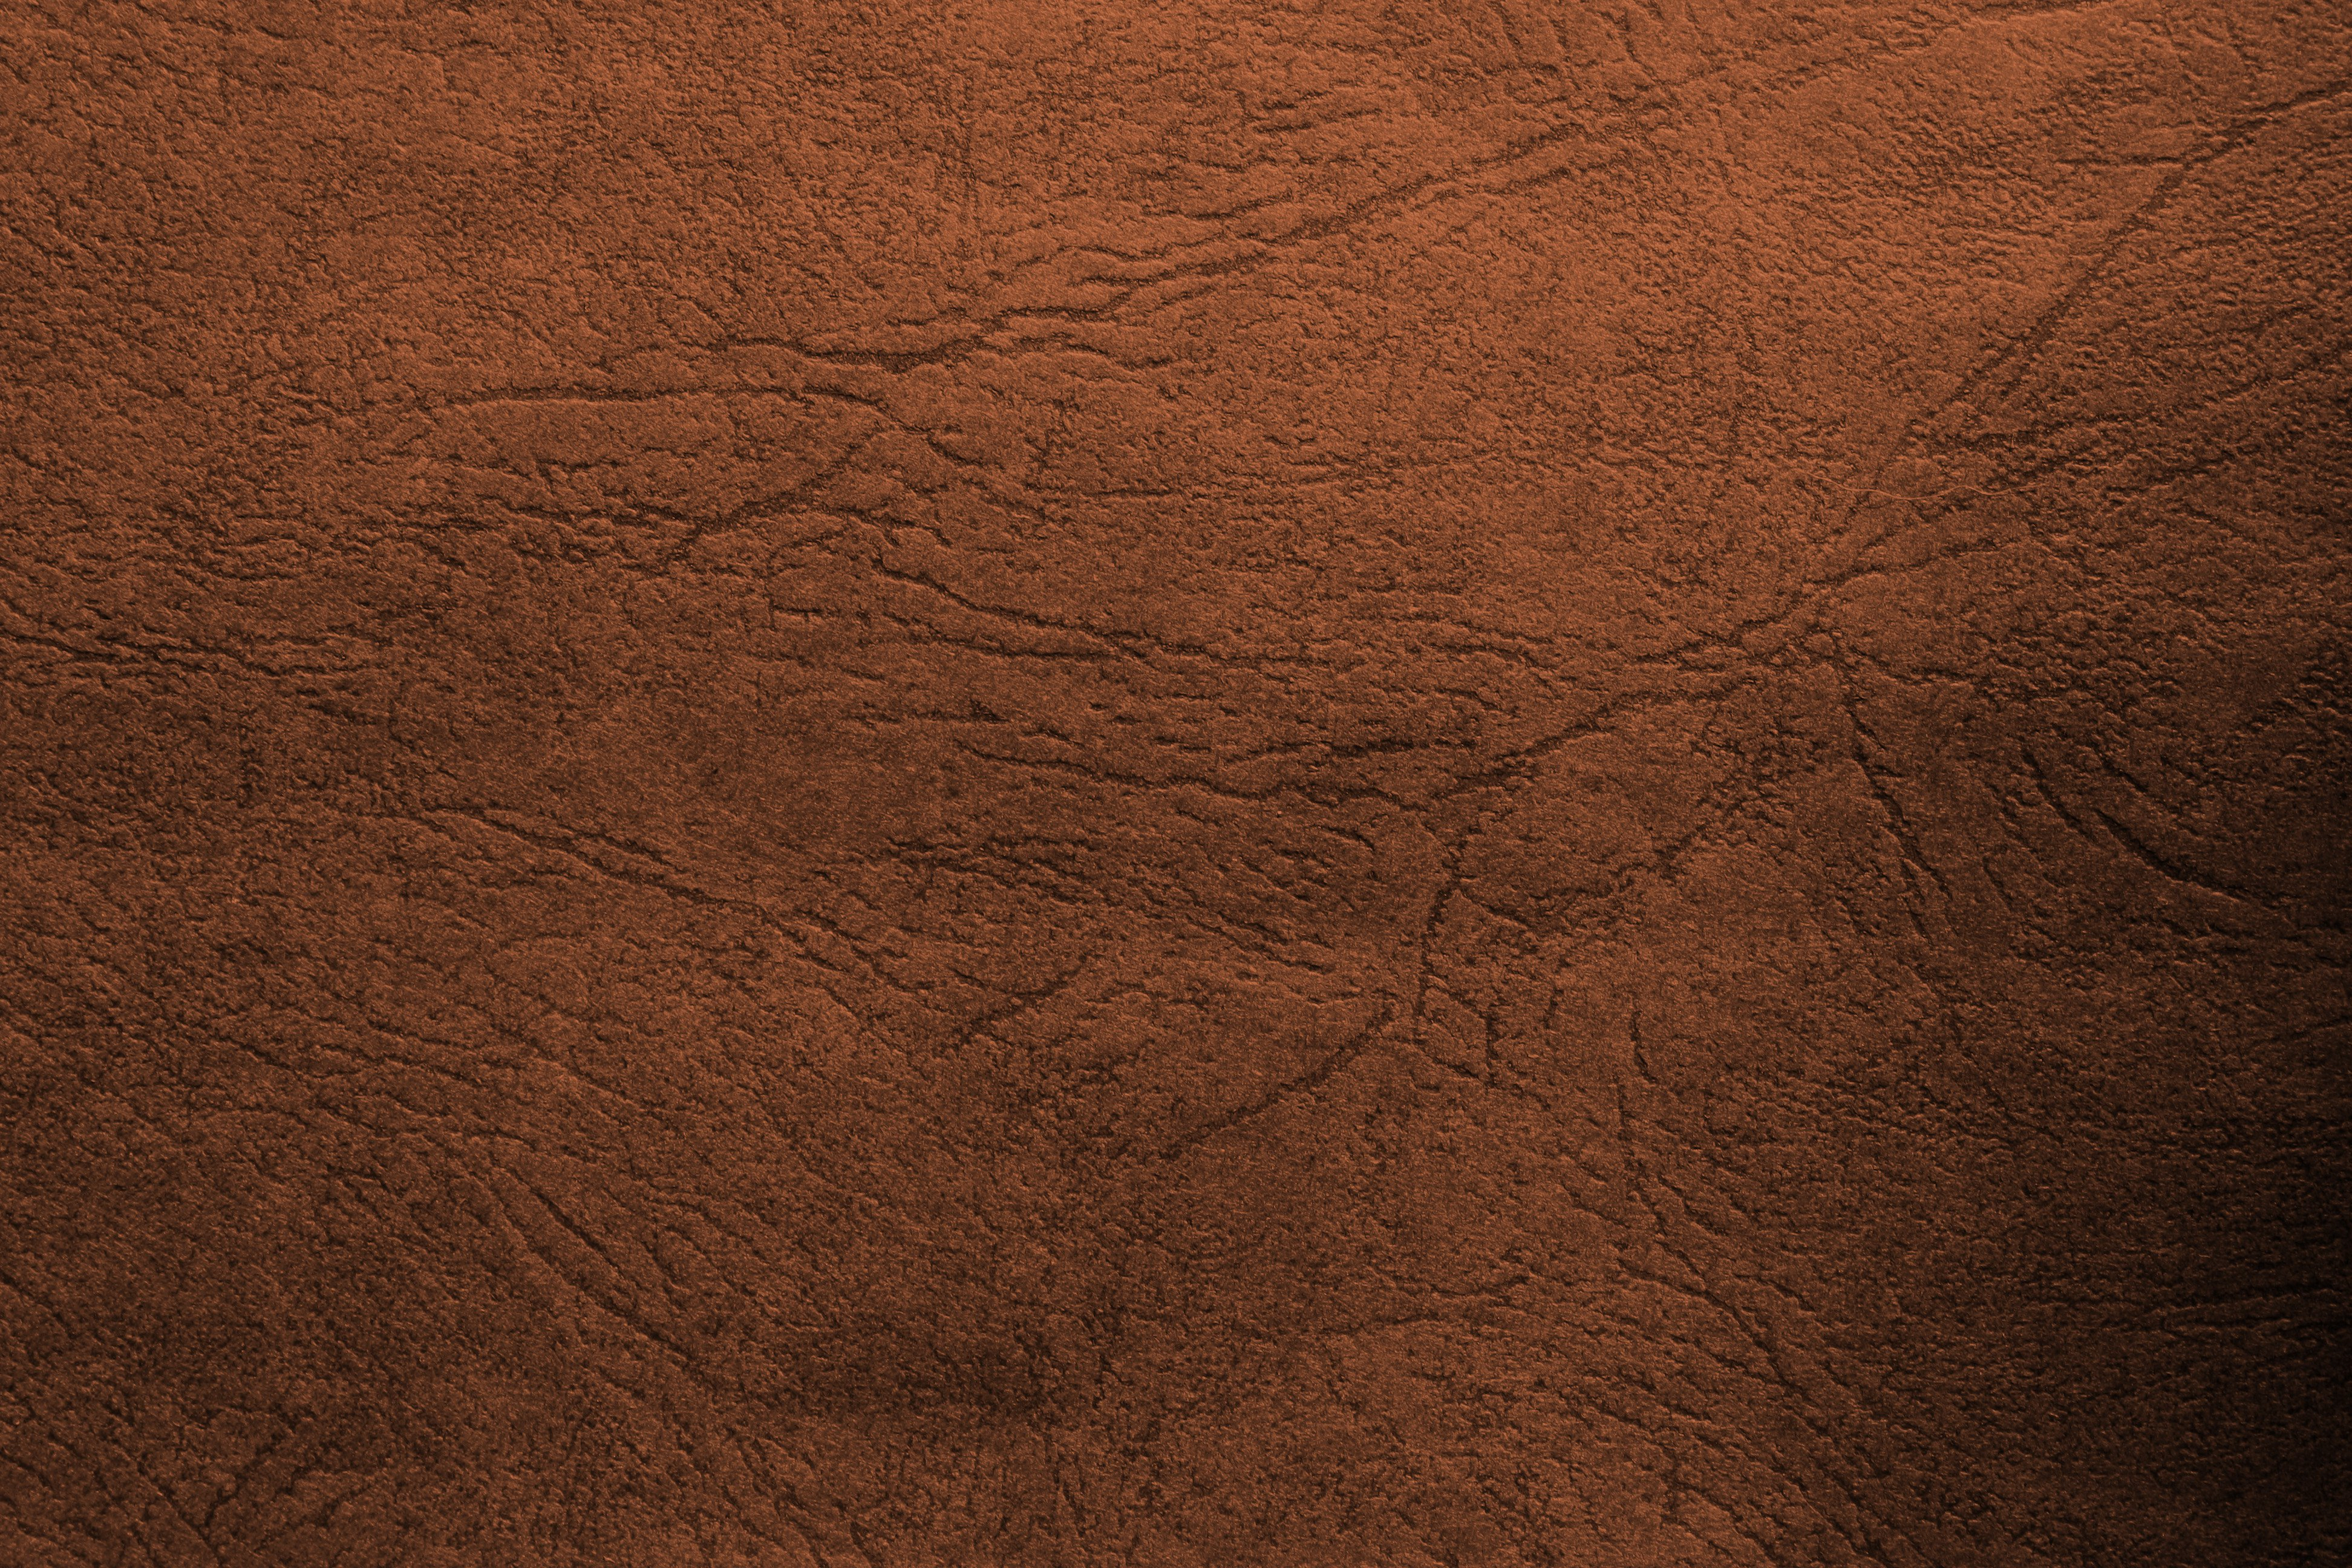 brown leather texture picture